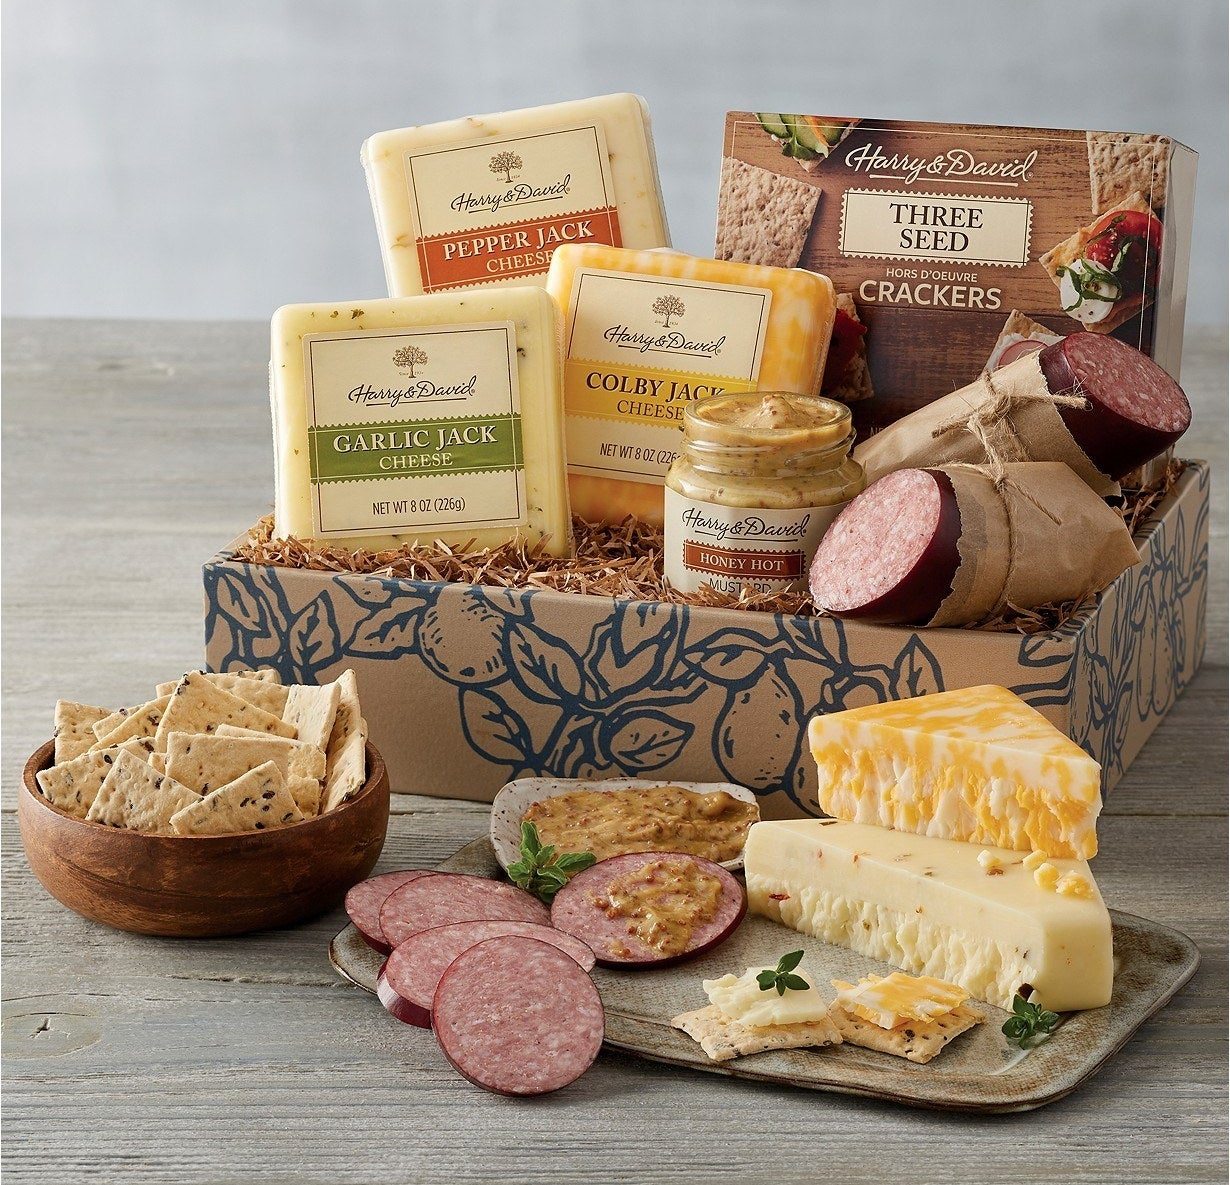 The seven-piece meat and cheese set